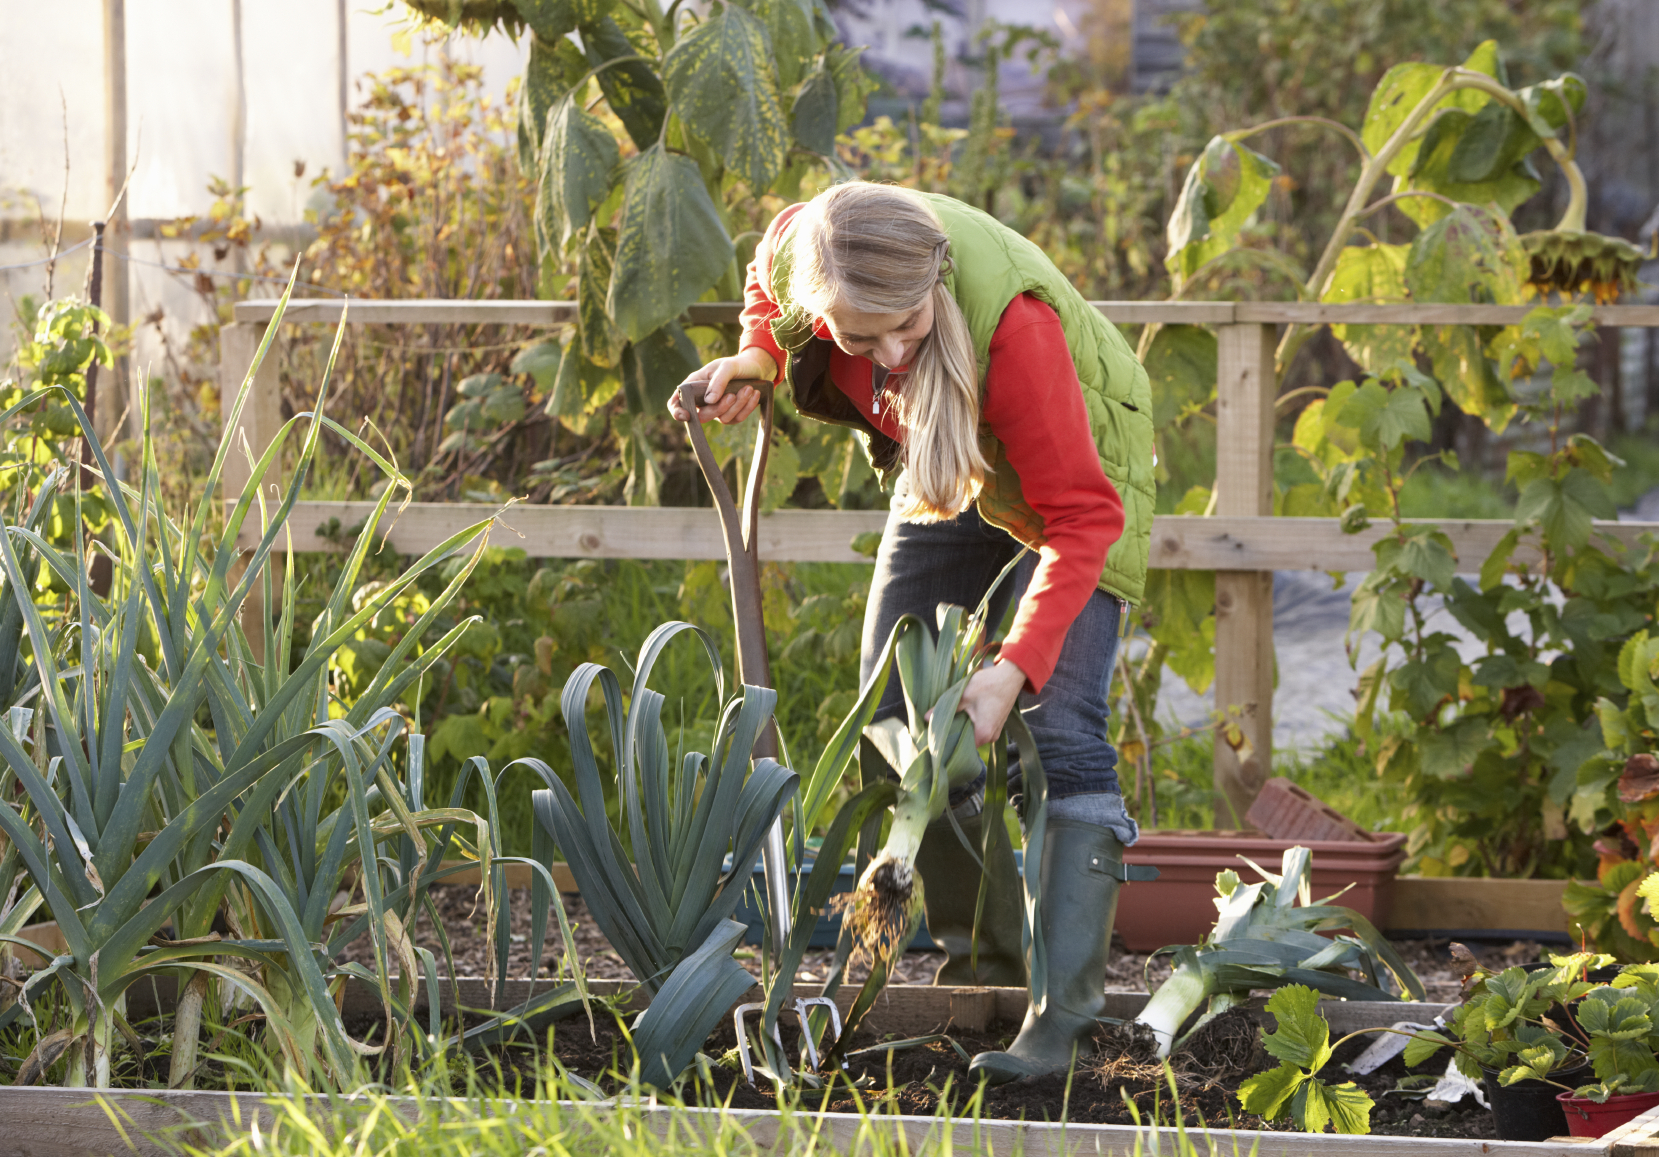 Sharing plots allows people without gardens to be able to grow food